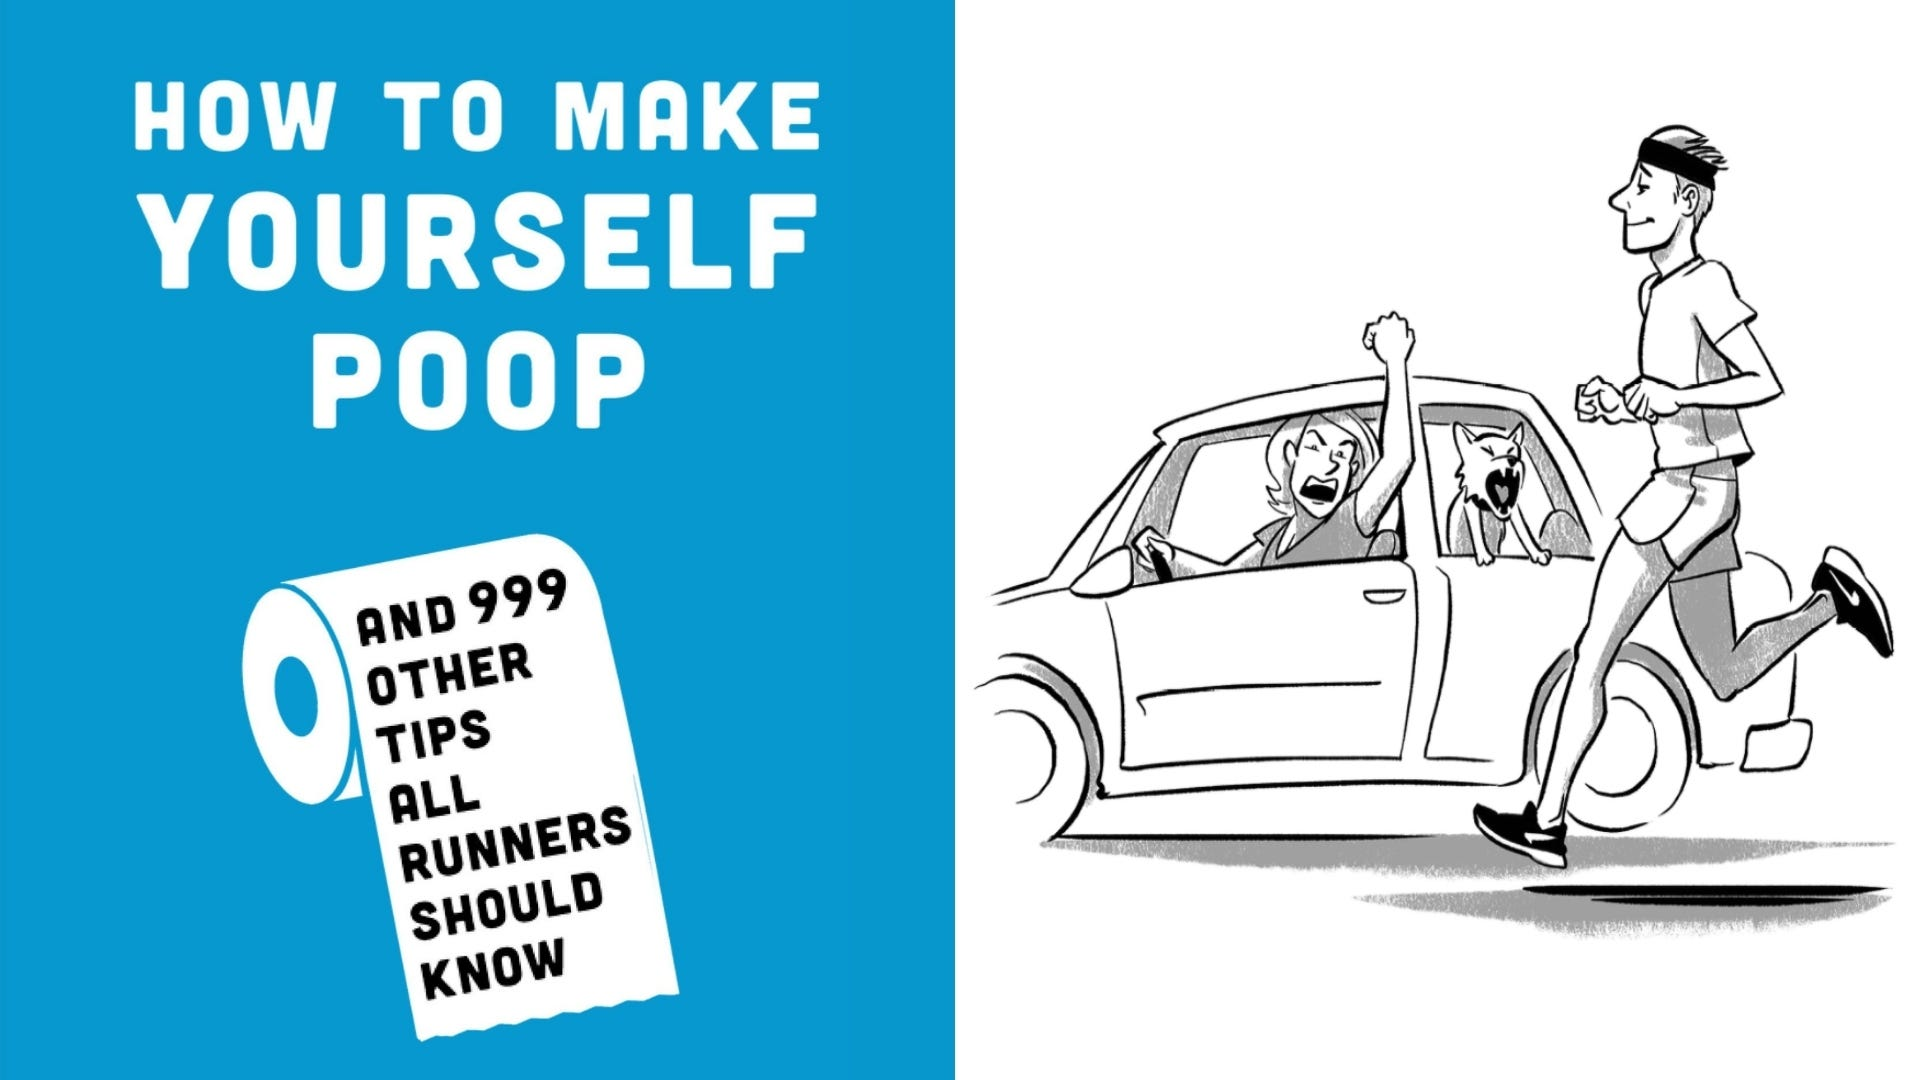 """A blue book cover titled """"How to Make Yourself Poop"""" and an illustration of a man running by a car."""